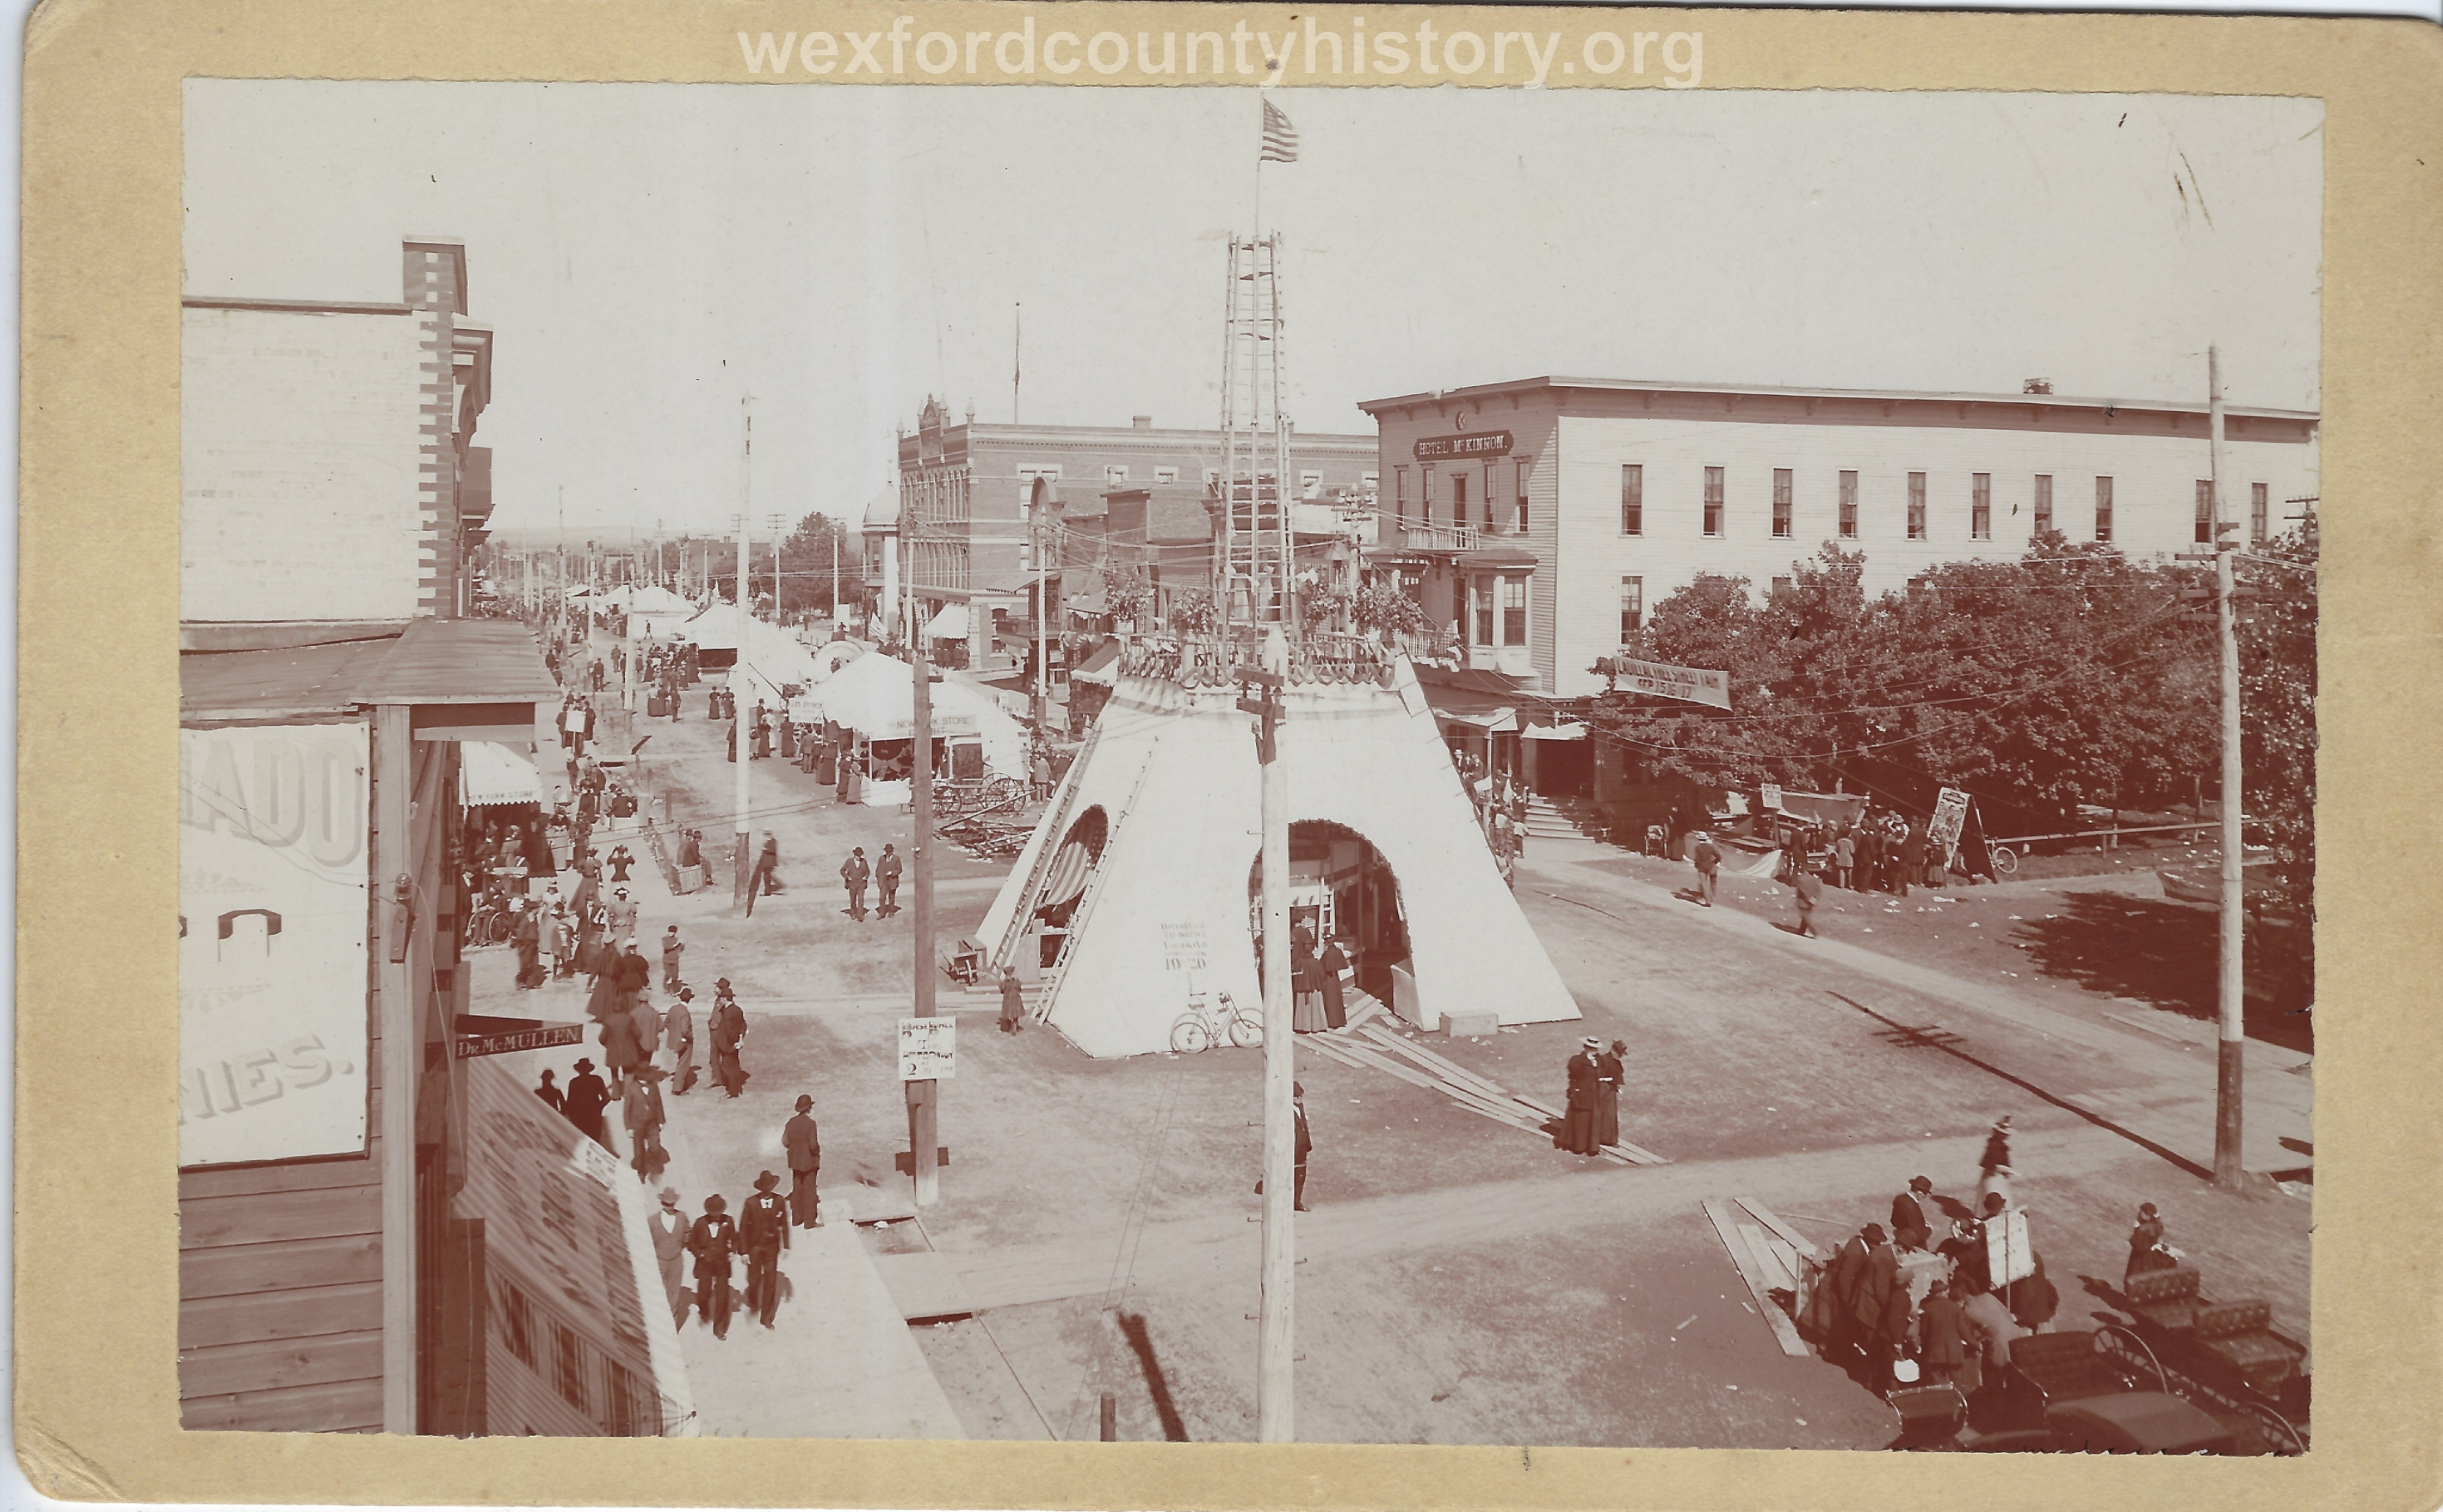 Cadillac-Parade-Free-Fair-on-the-corner-of-Harris-and-Mitchell-1897-09-15-8-Copy